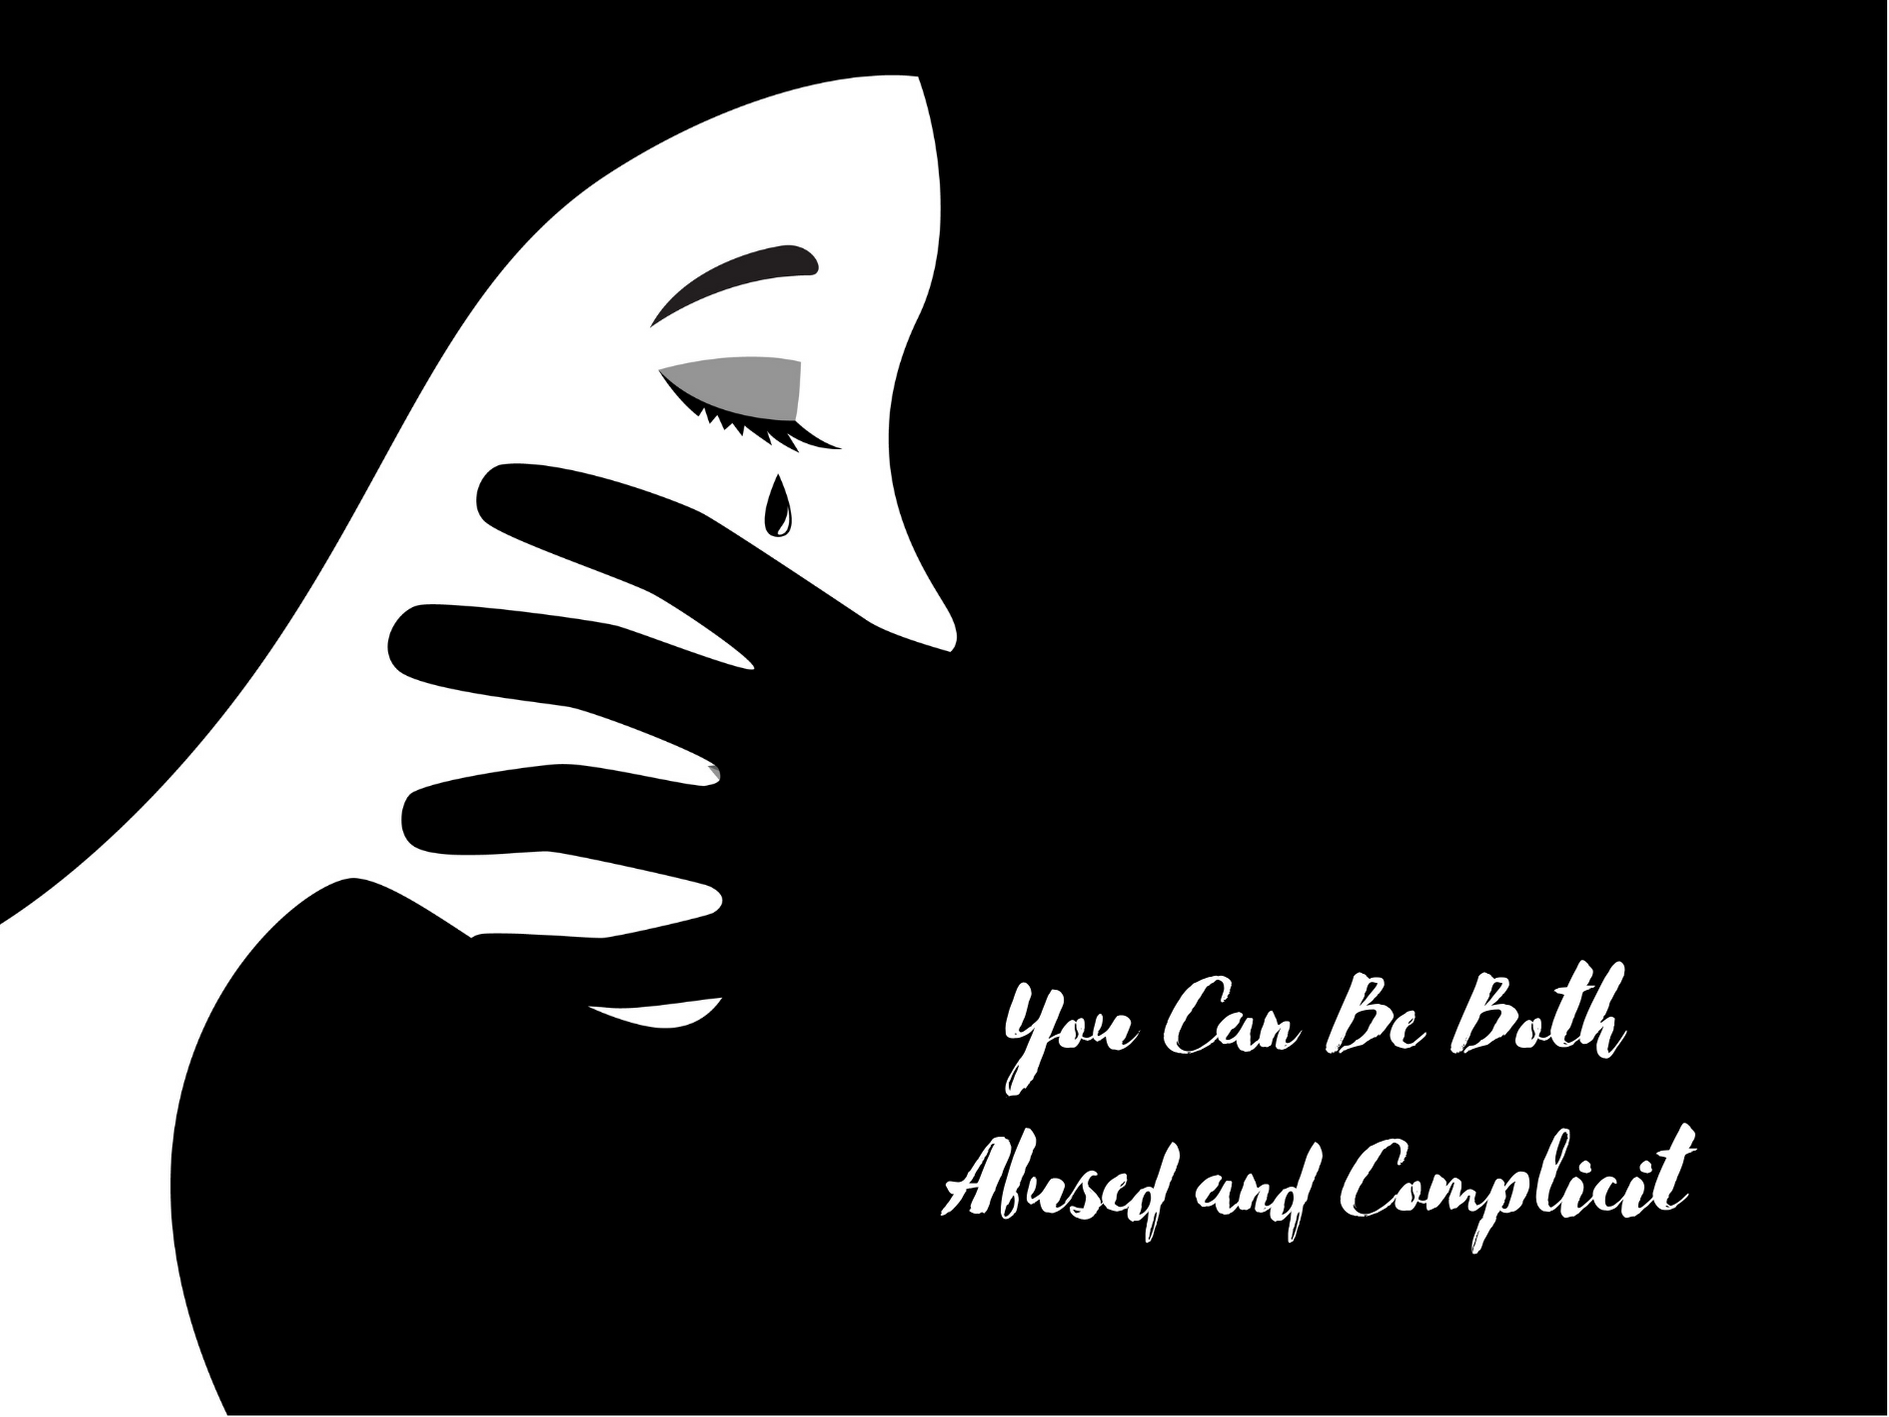 You Can Be Both Abused and Complicit in Abuse: A True Story